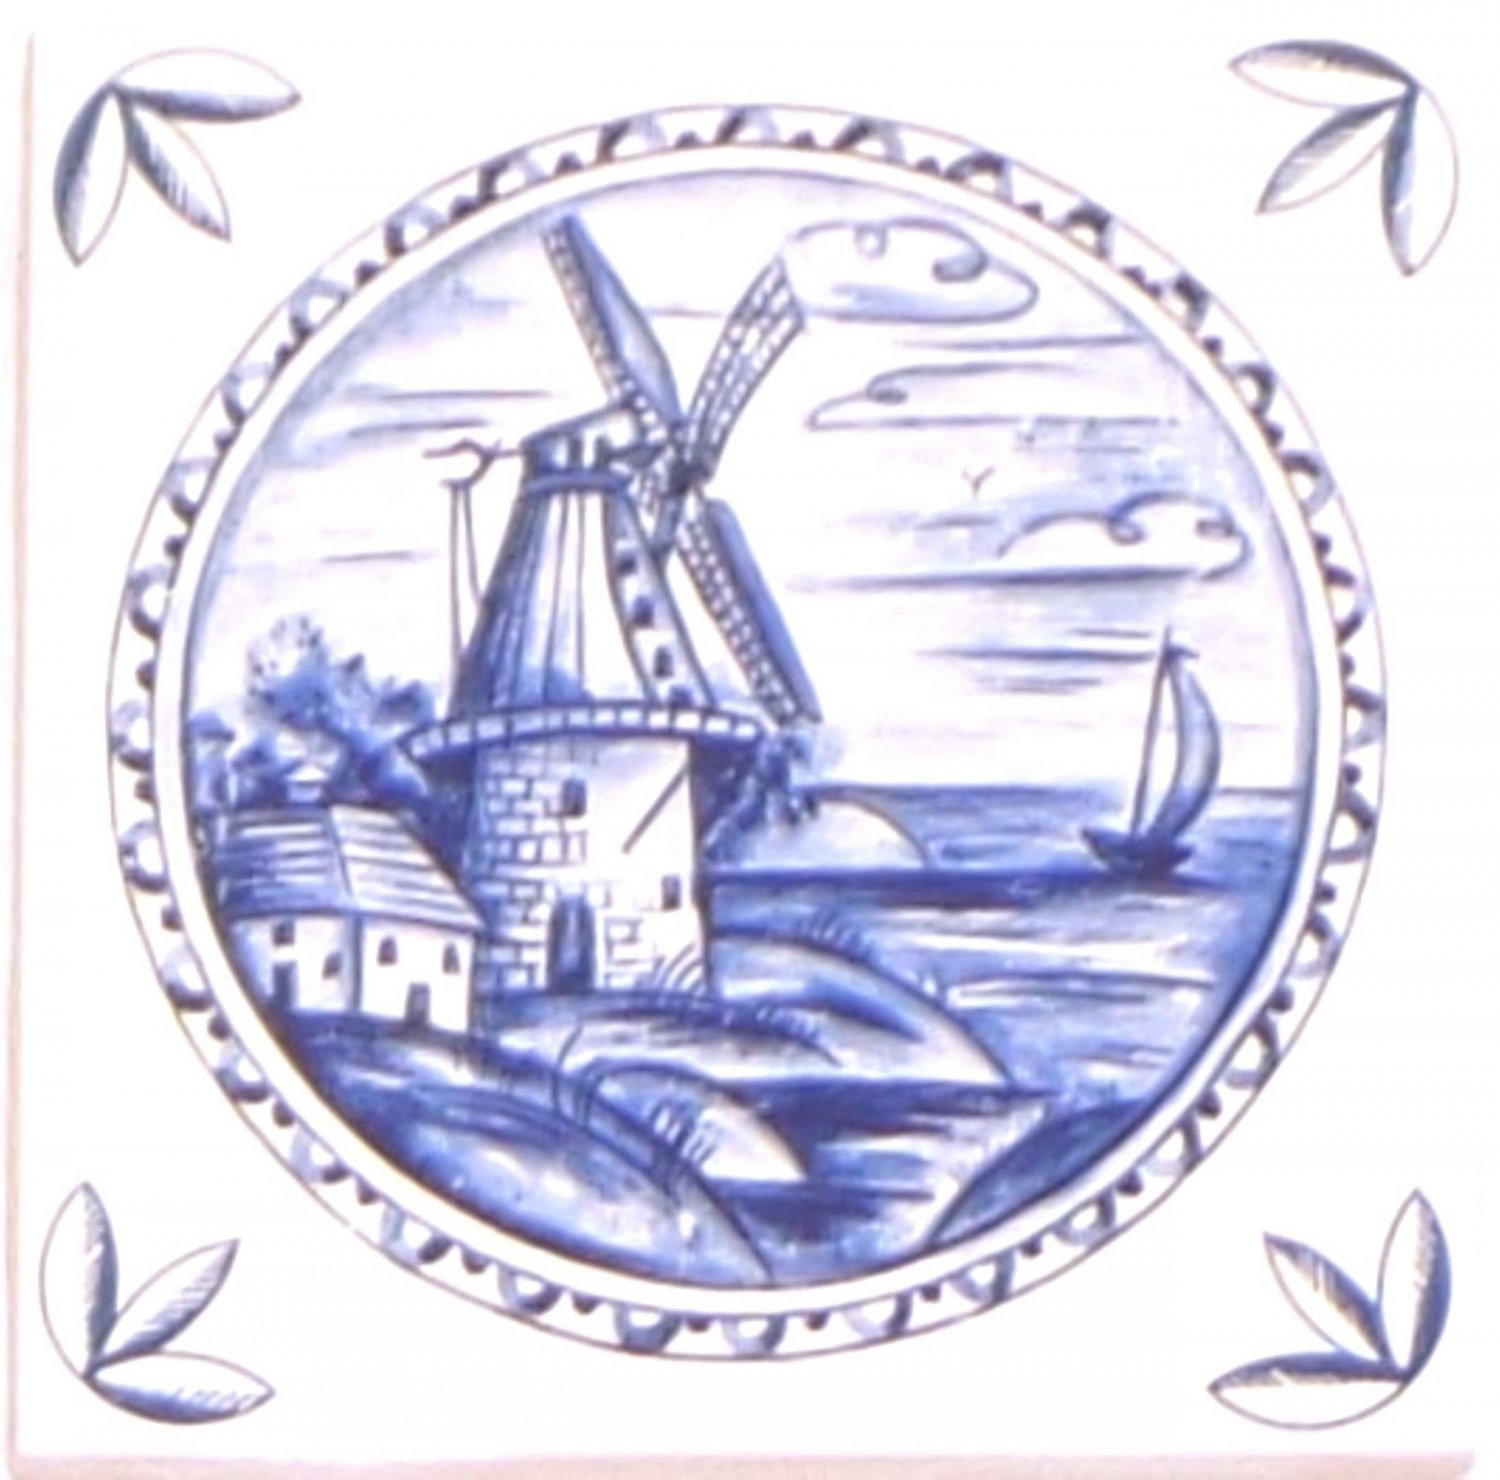 "Blue Delft Ceramic Tile 4.25"" x 4.25"" House Windmill Kiln Fired with Corners #2"